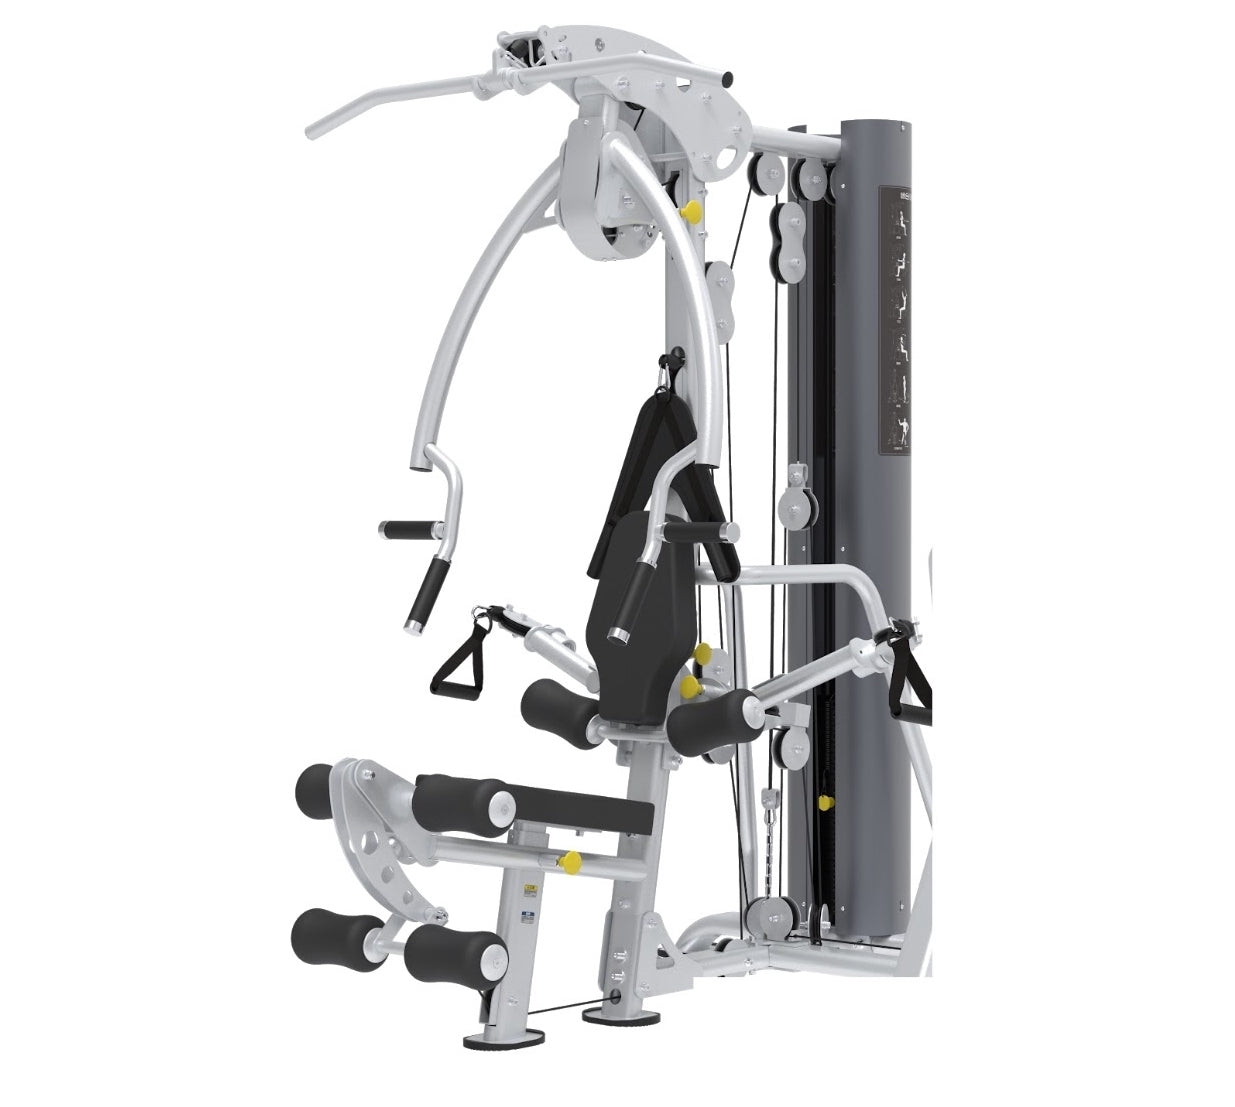 XPT Multi-Station Gym System with Adjustable Cable Cross Arms